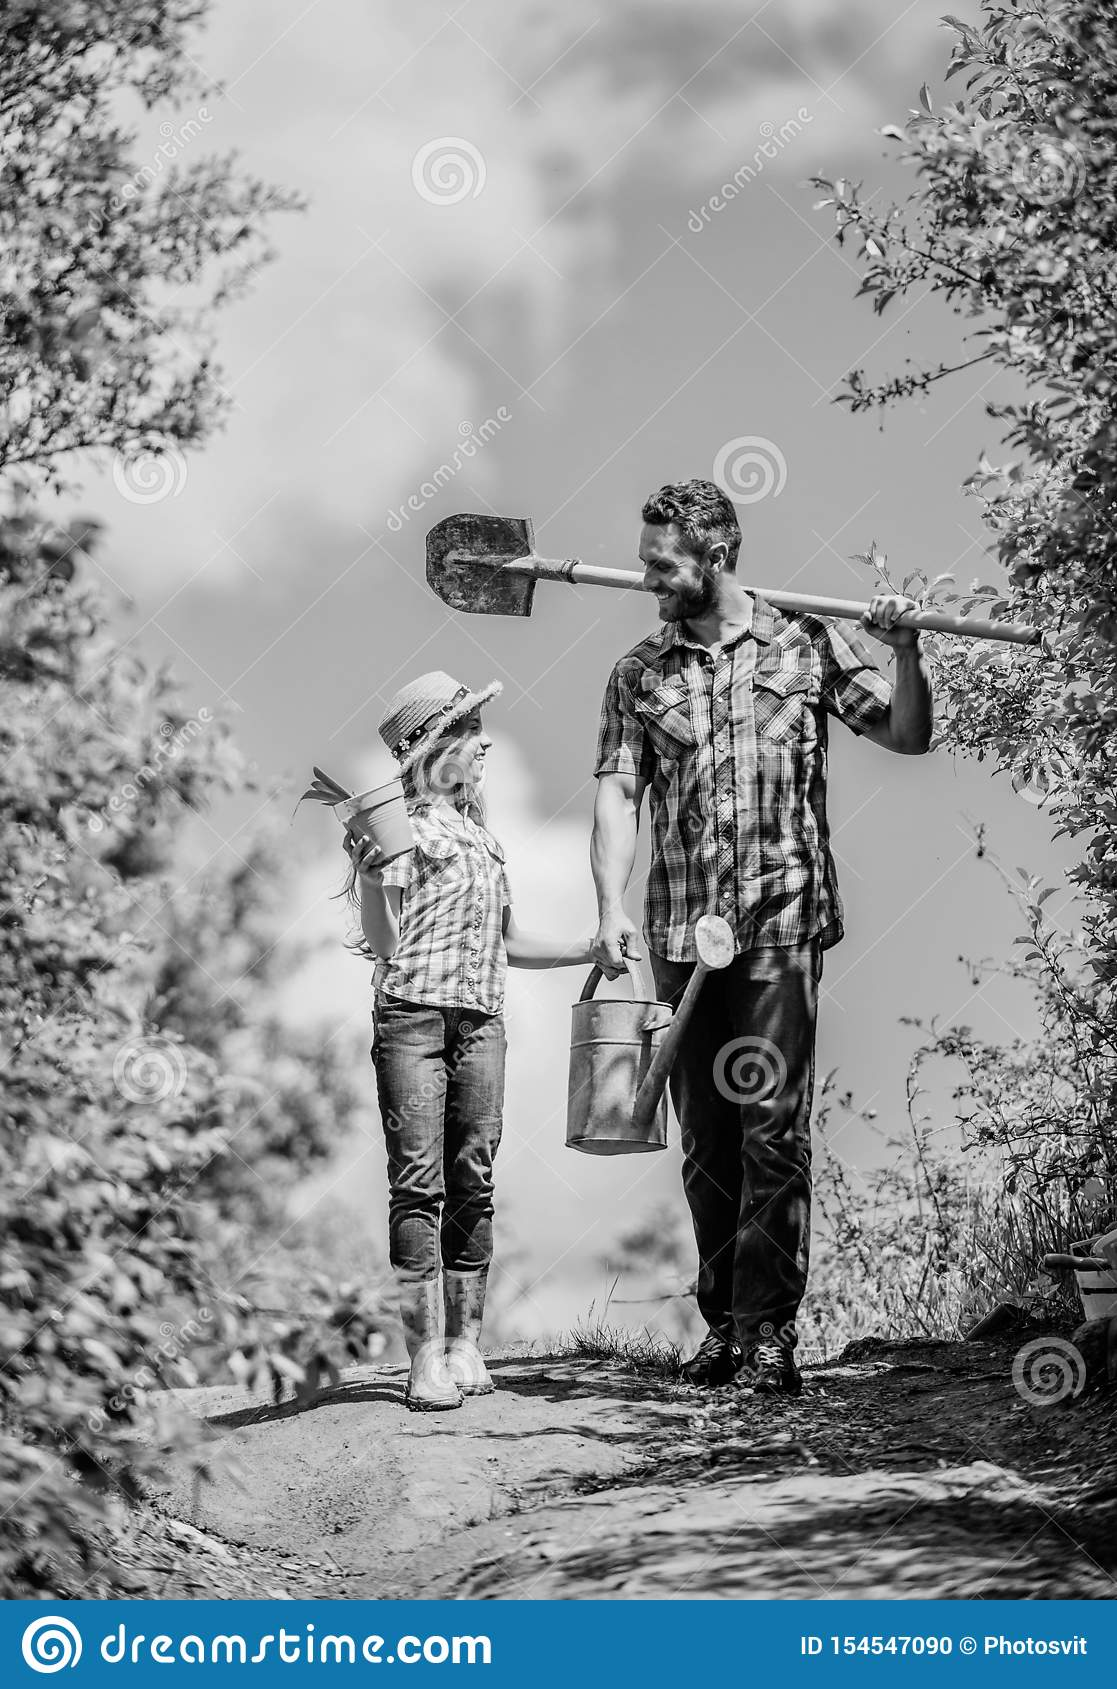 Kid worker with dad hold box. family bonding. spring country side village. father and daughter on rancho. summer farming